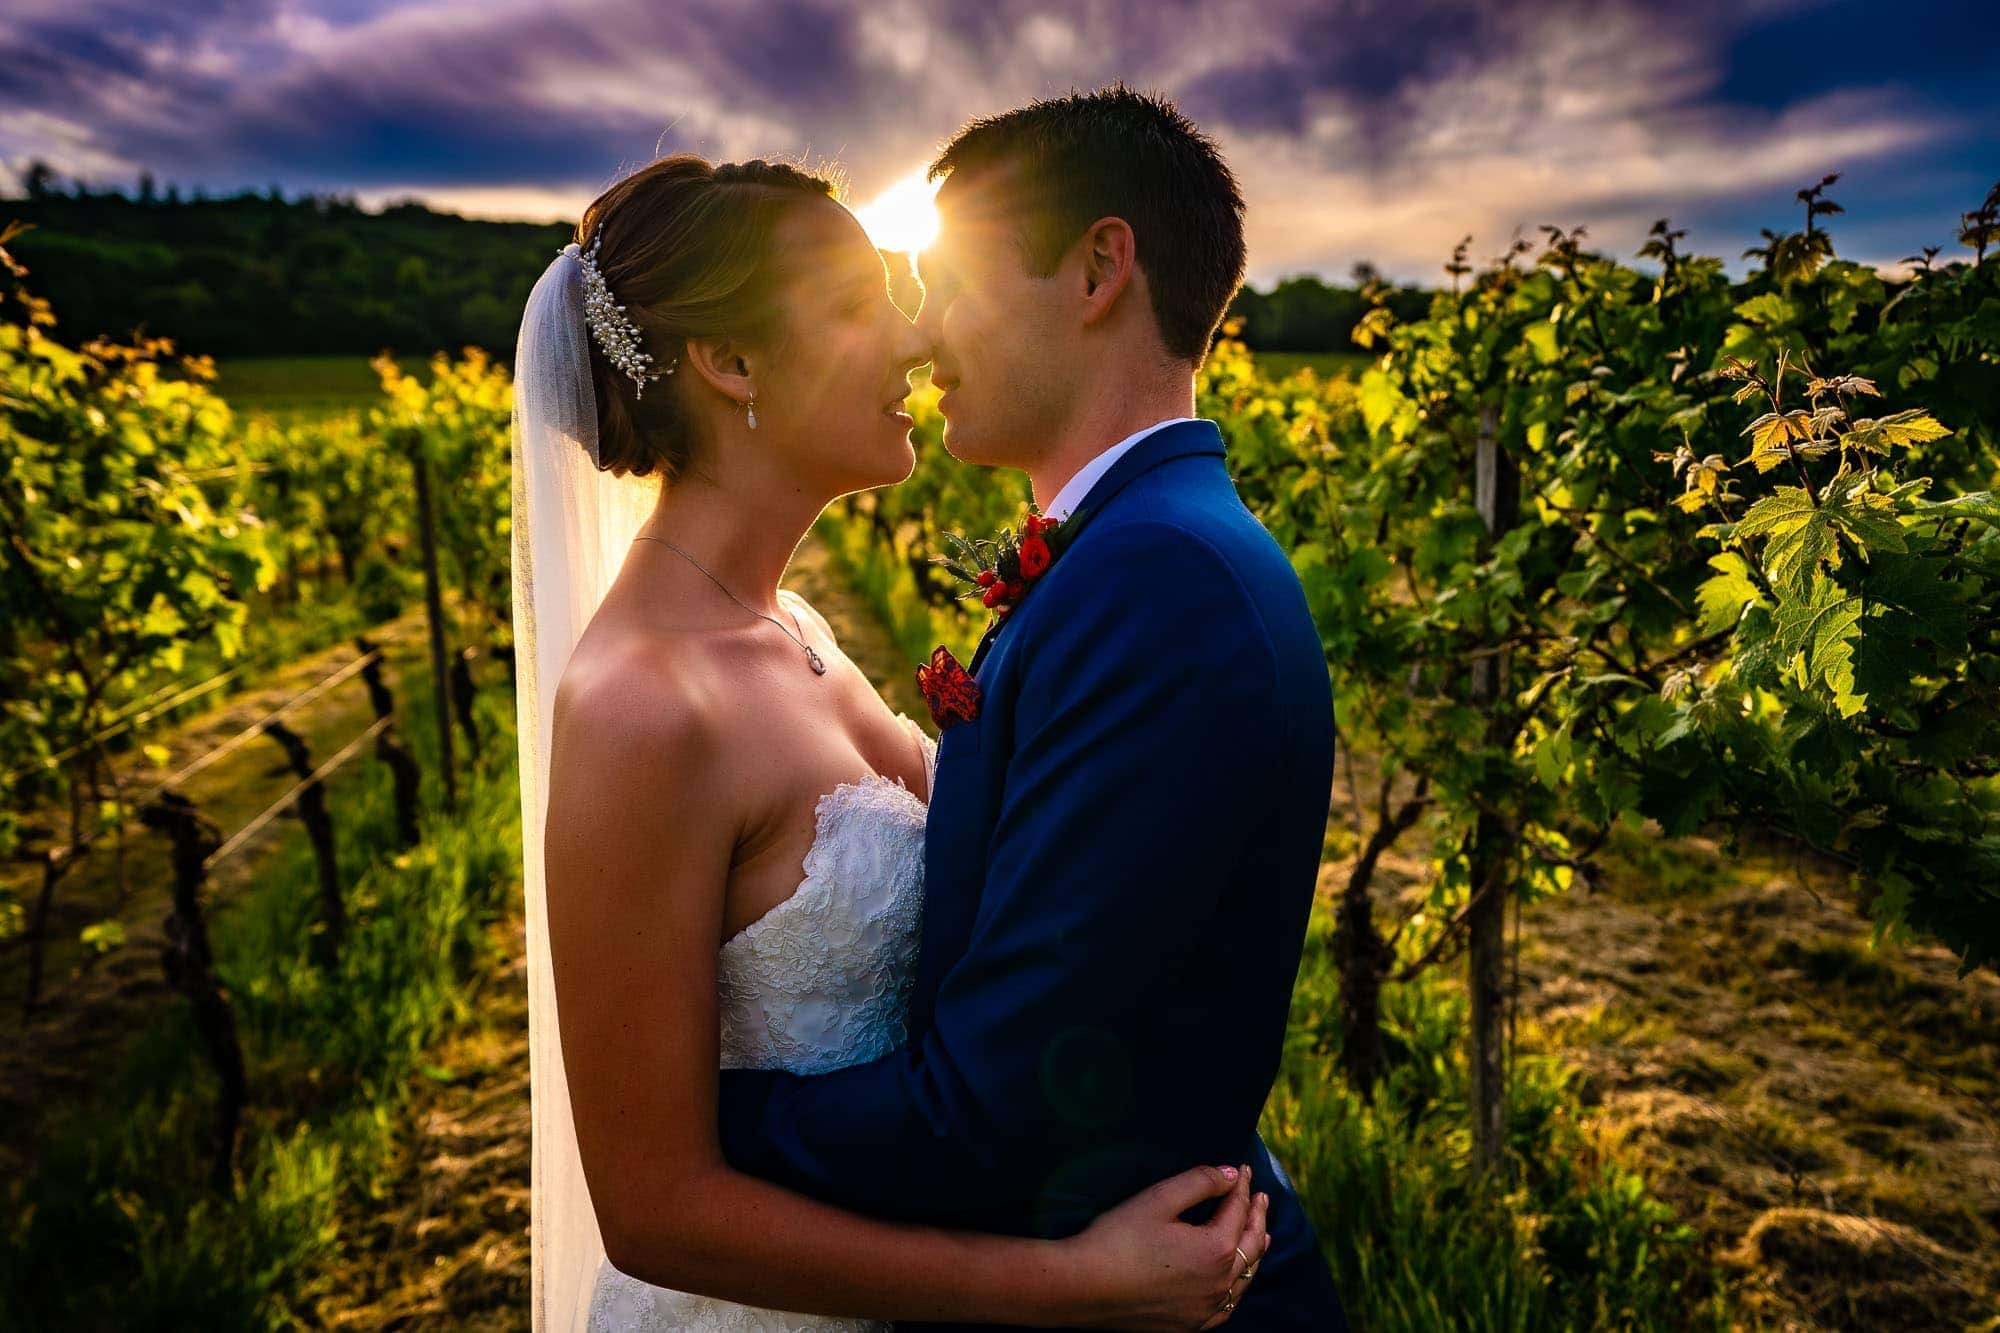 Denbies Wine Estate Wedding Photography. Wedding Portrait in the vineyard at sunset by Tansley Photography